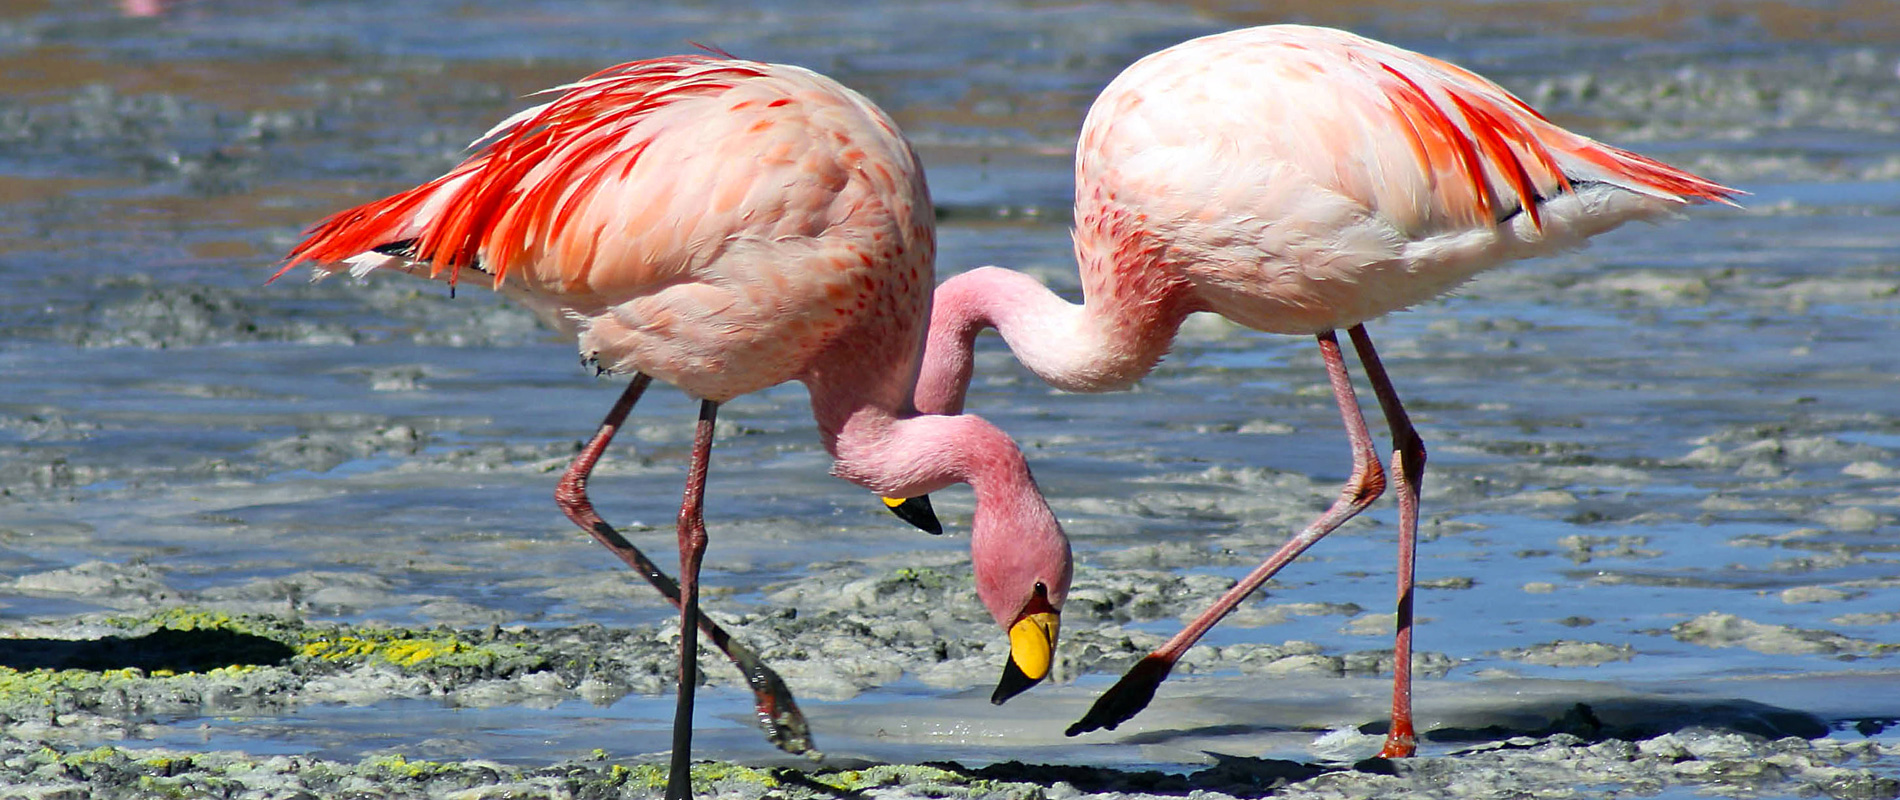 Bolivie | Lagunes et flamands roses